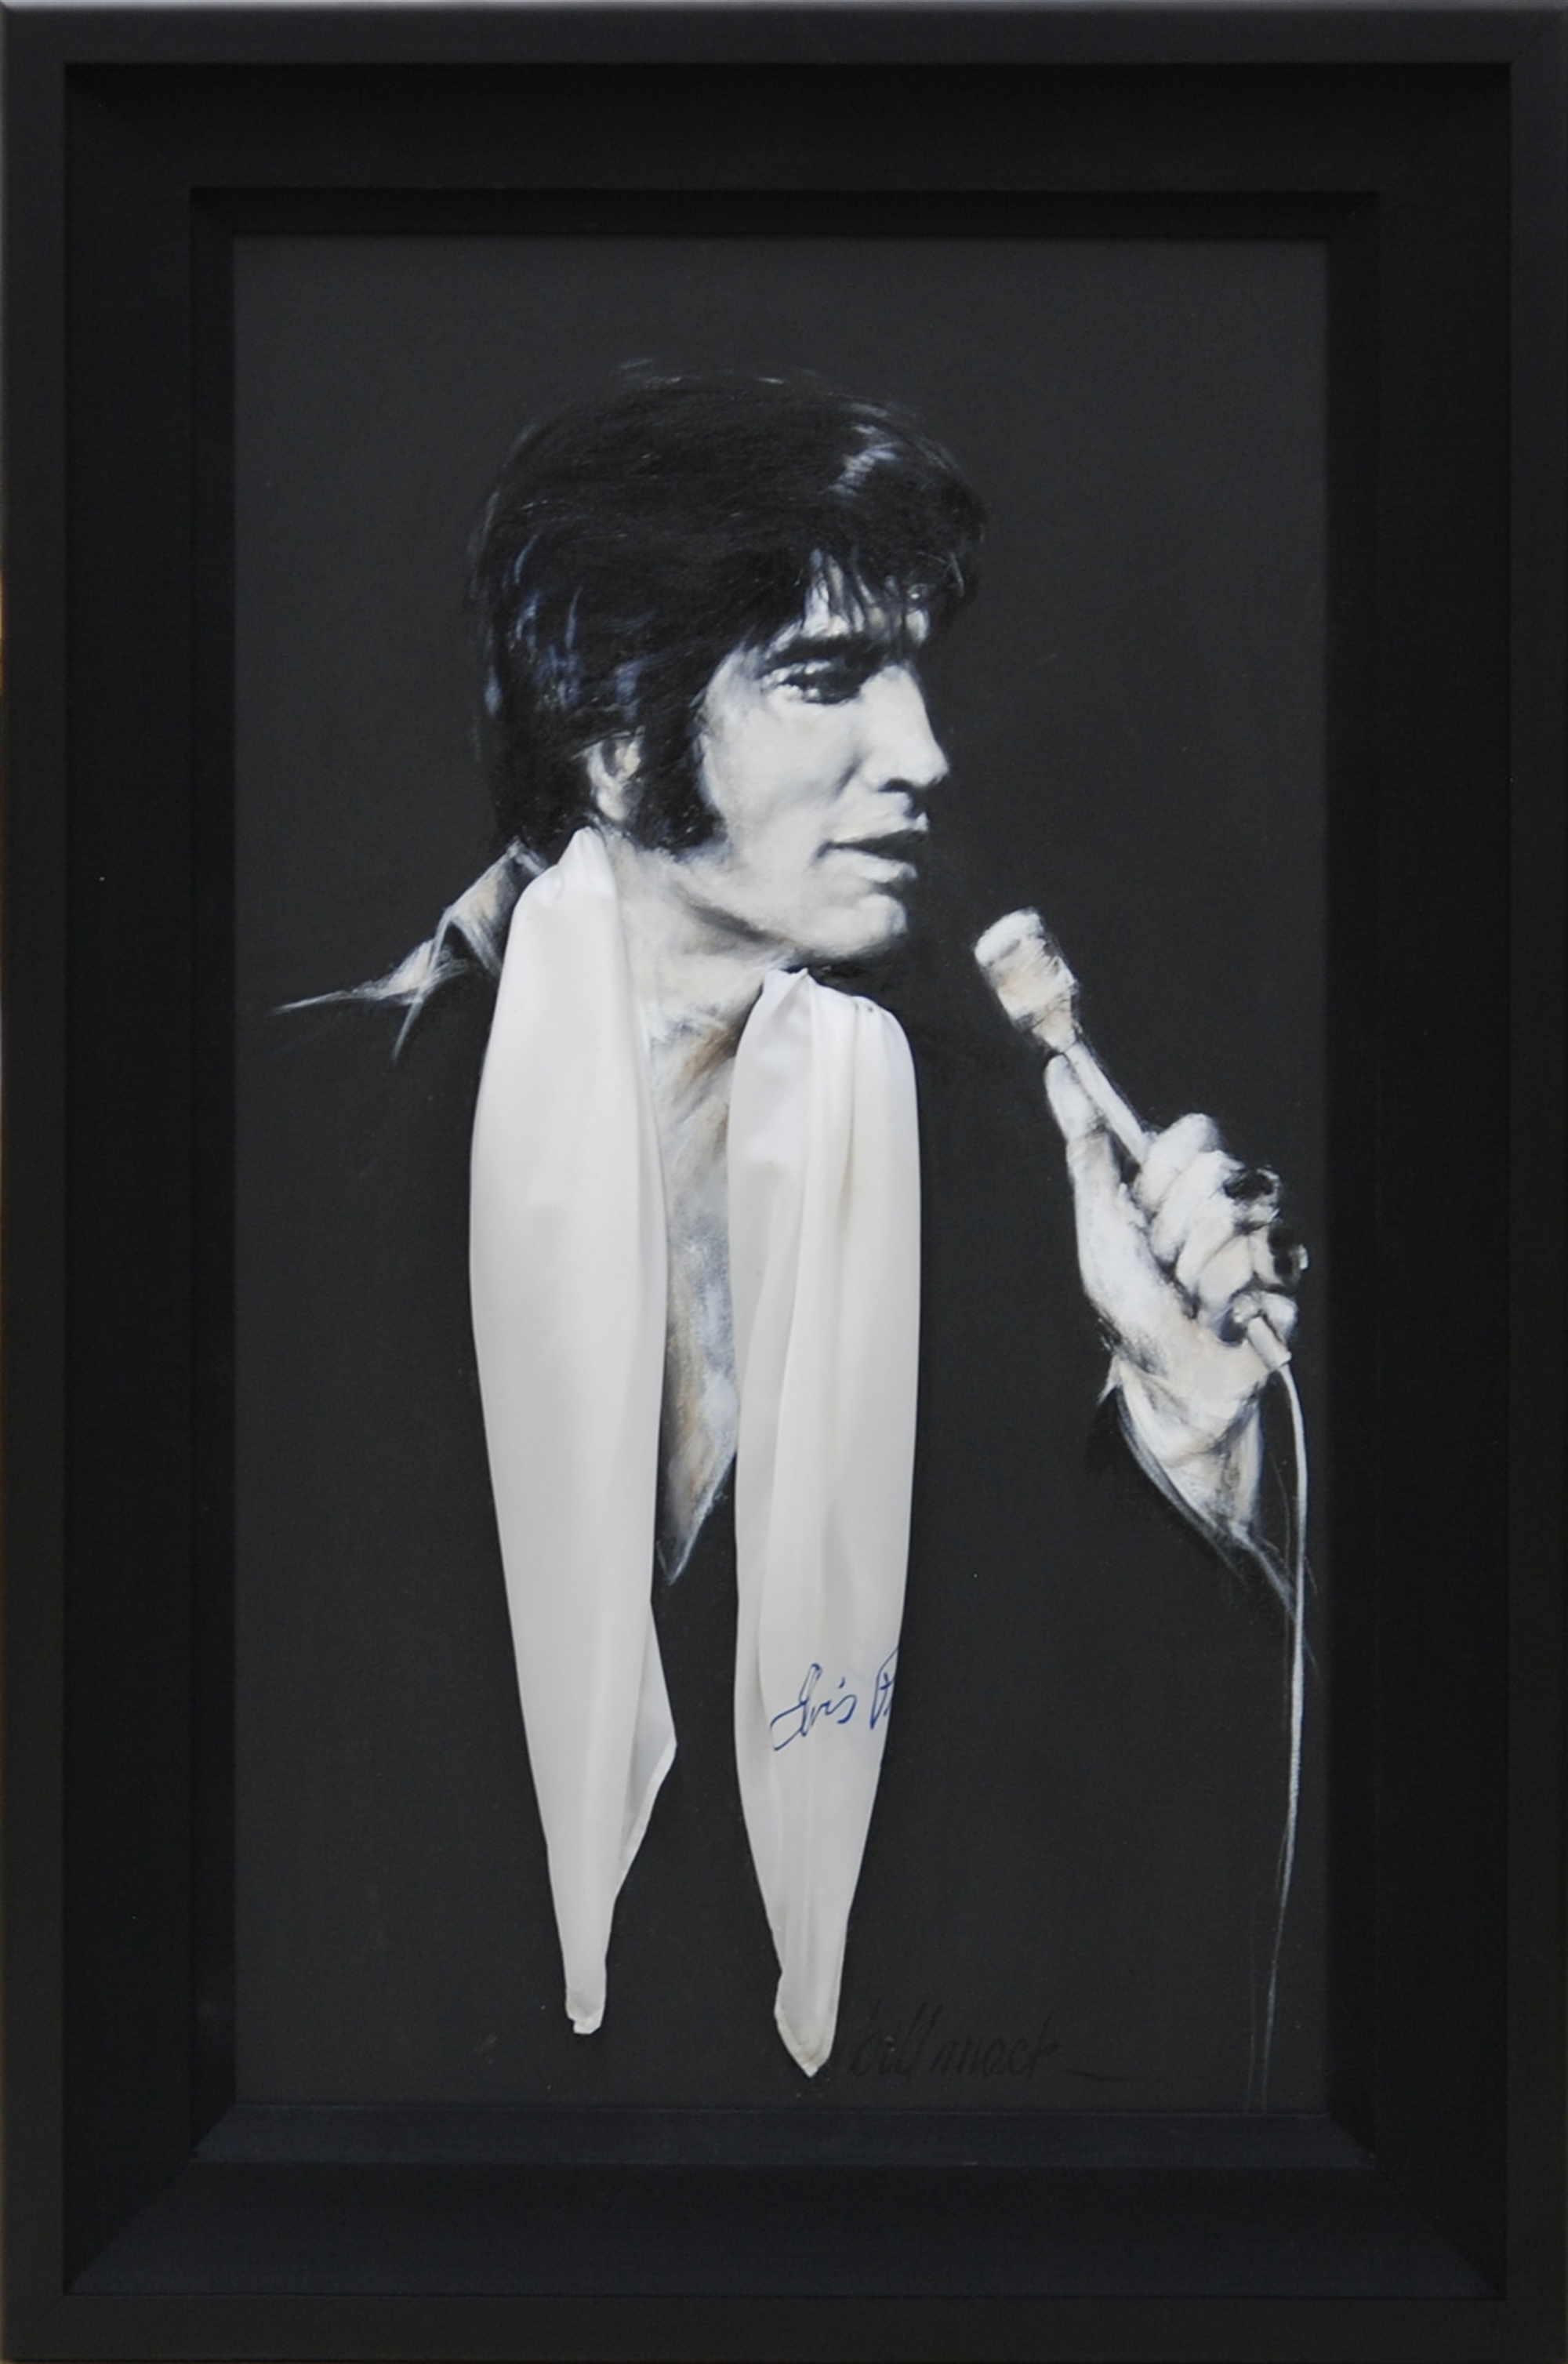 The King with Scarf by Bill Mack